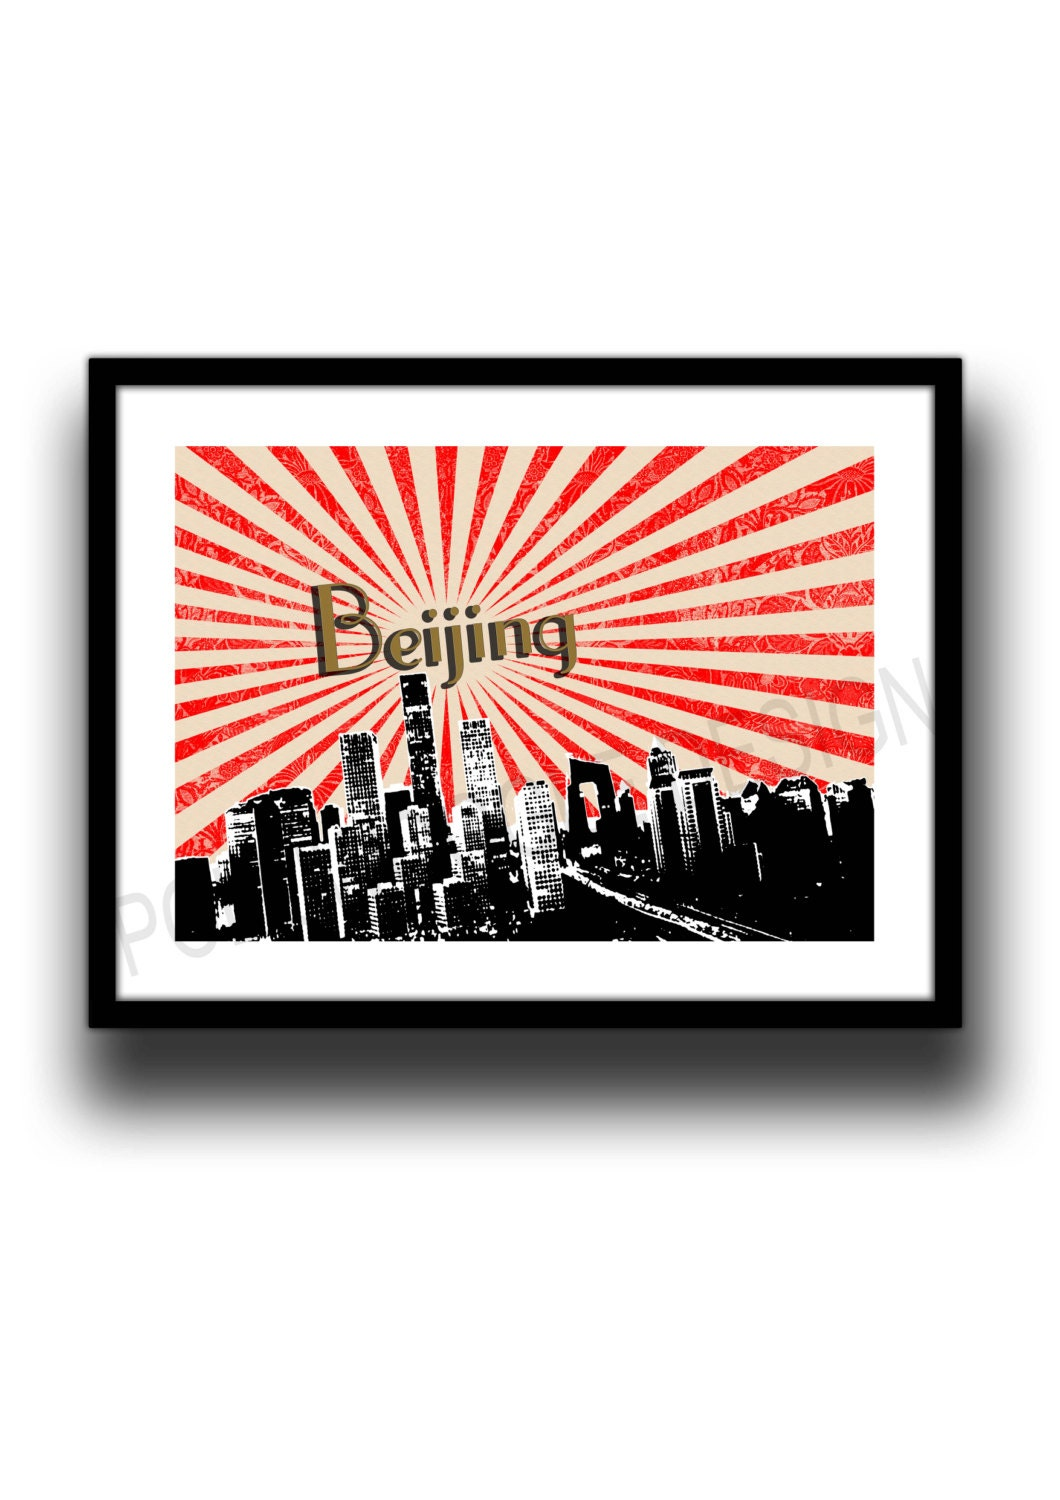 Beijing skyline poster digital art minimalist wall decor for Minimalist wall art